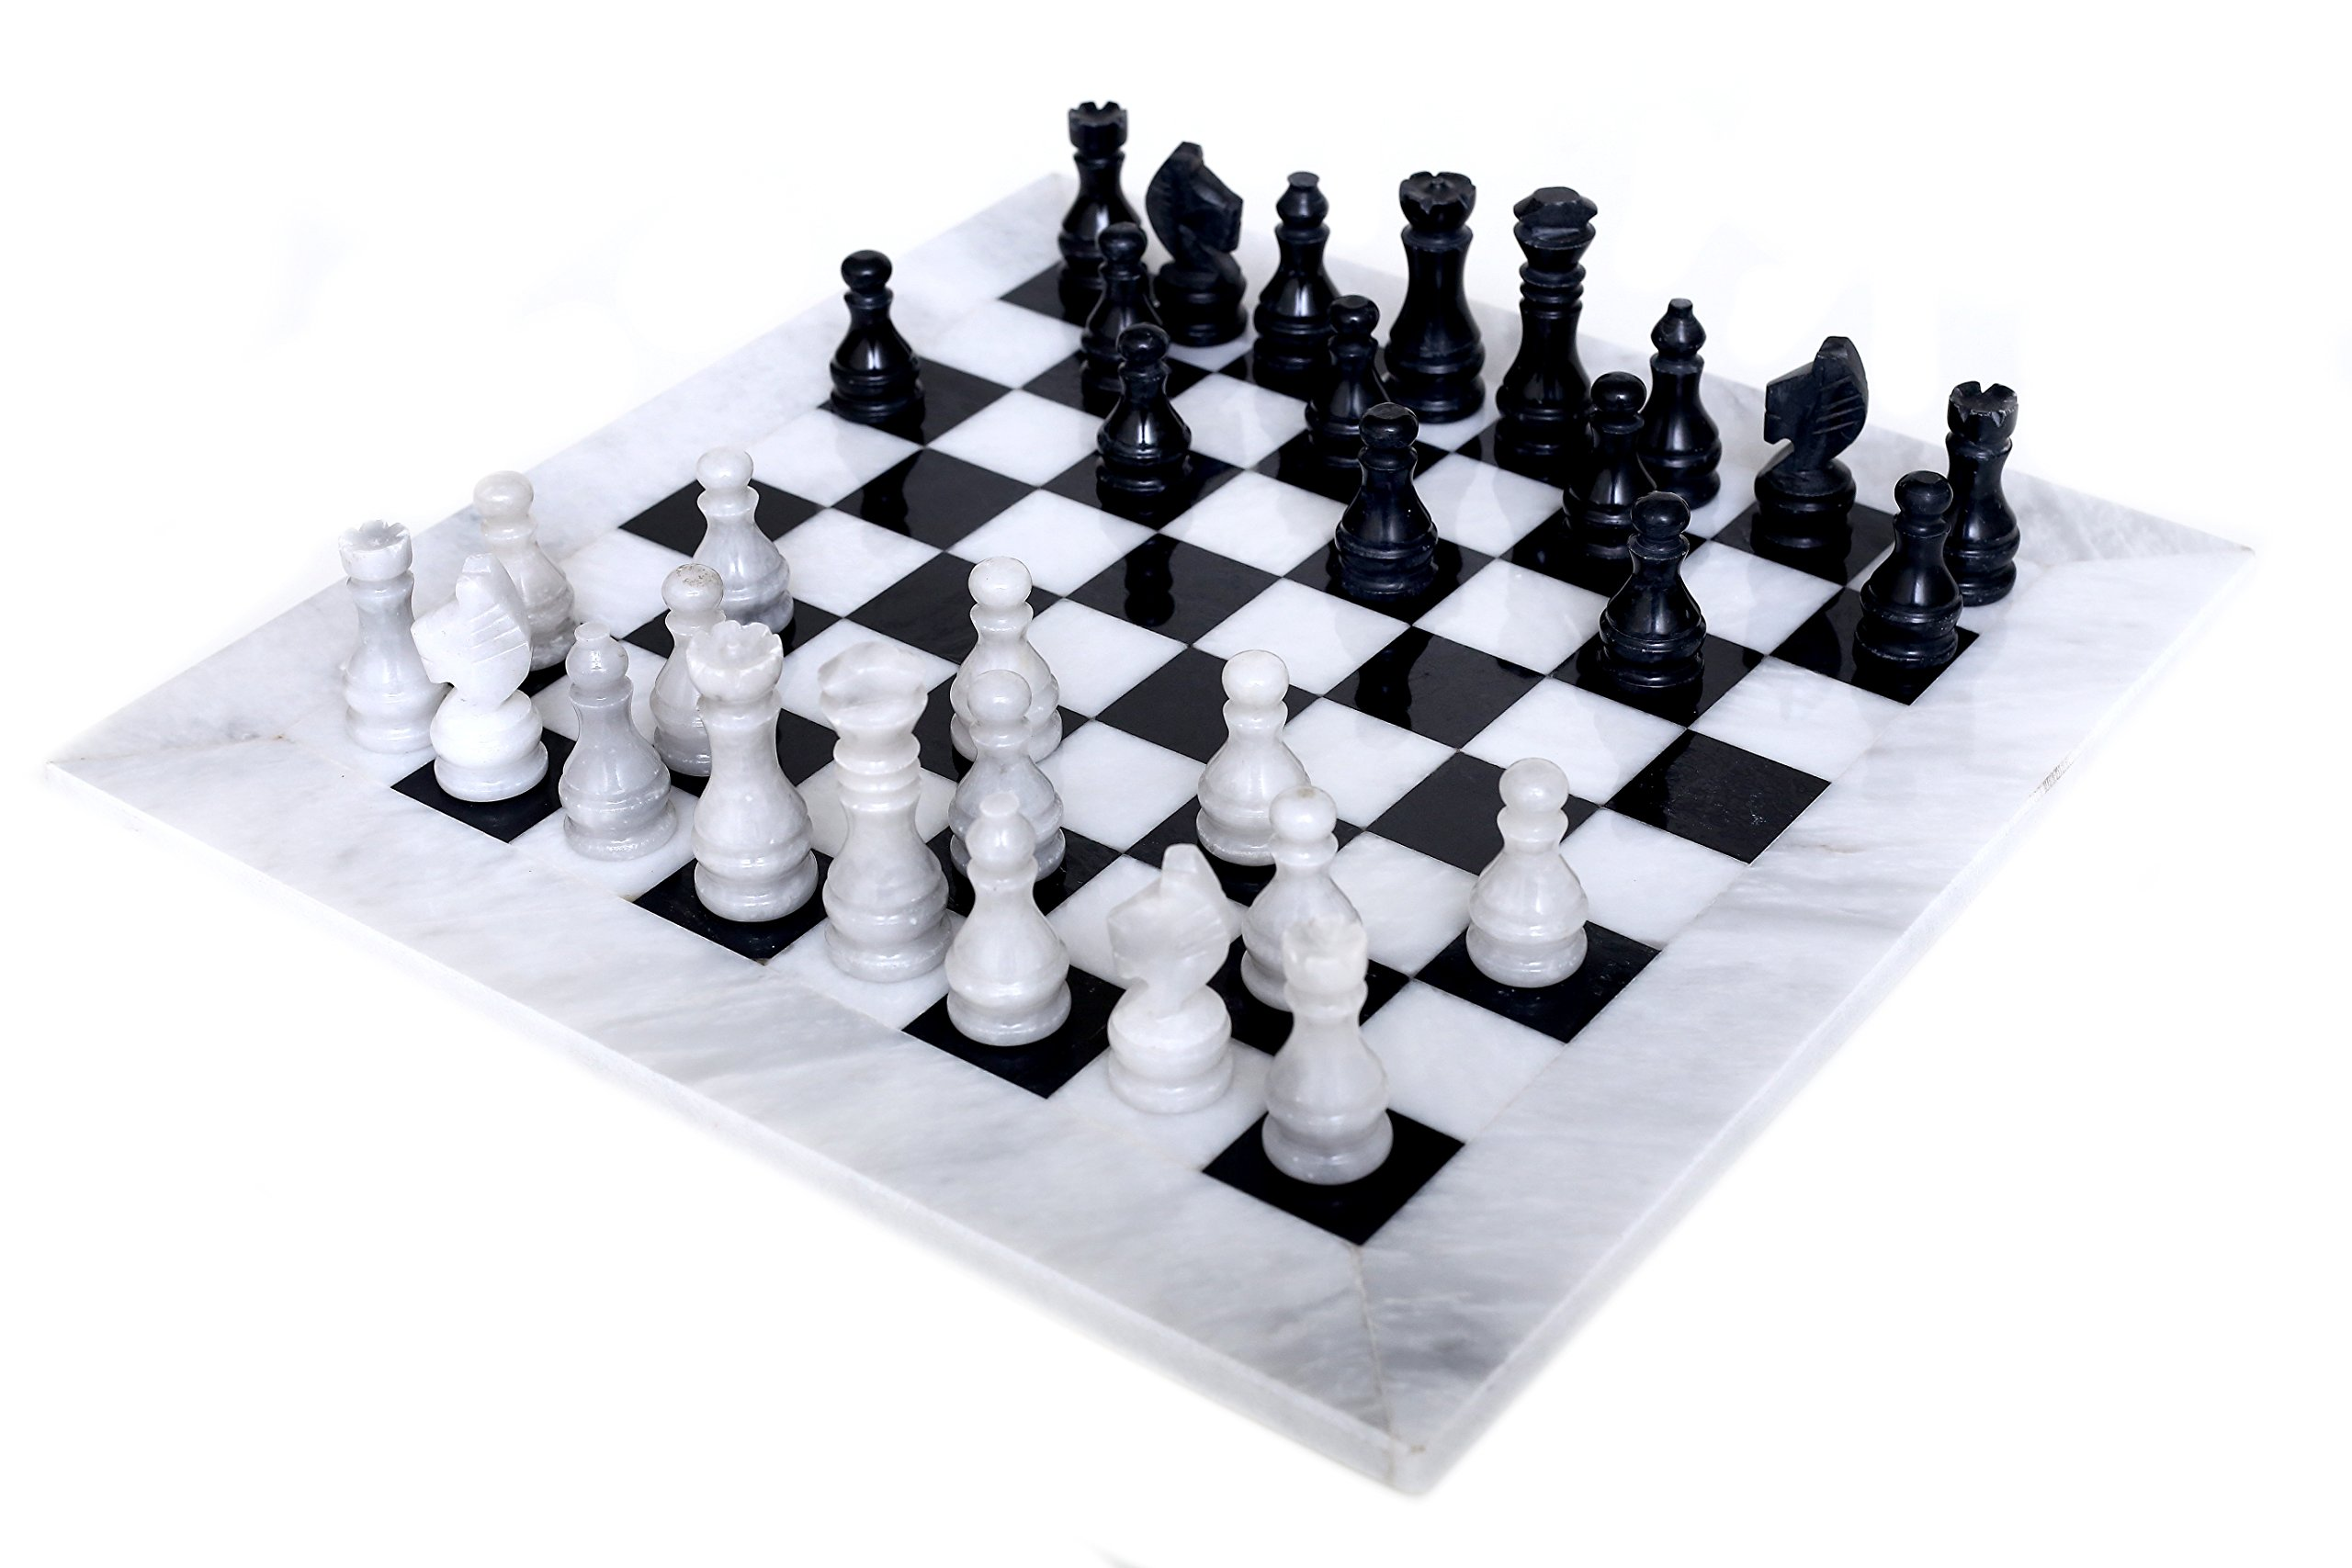 RADICALn 16 Inches Large Handmade White and Black Weighted Marble Full Chess Game Set Staunton and Ambassador Style Marble Tournament Chess Sets -Non Wooden -Non Magnetic -No Digital Dgt -Not Chinese by RADICALn